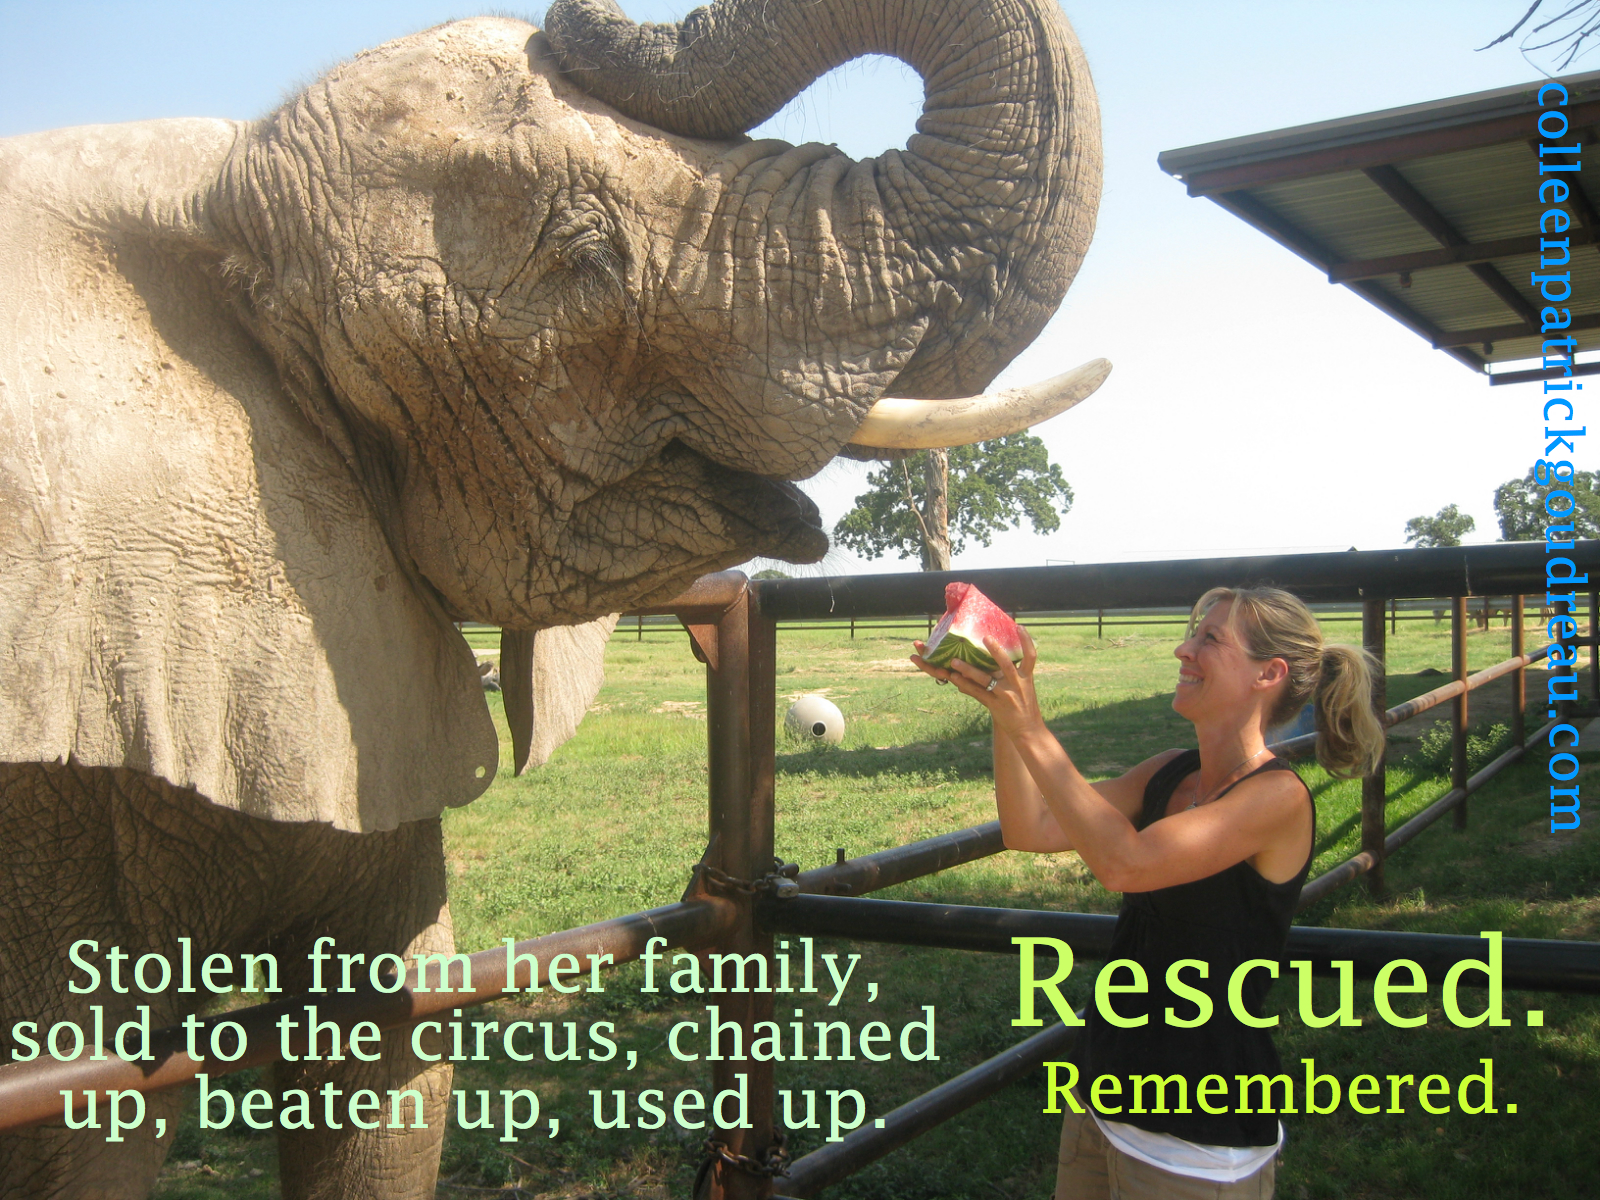 Babe was stolen as a young elephant from her family in Africa, suffered two broken legs being chained up and thrown about during transport, and was finally brought to Black Beauty Ranch where she lived out the last few years of her life.